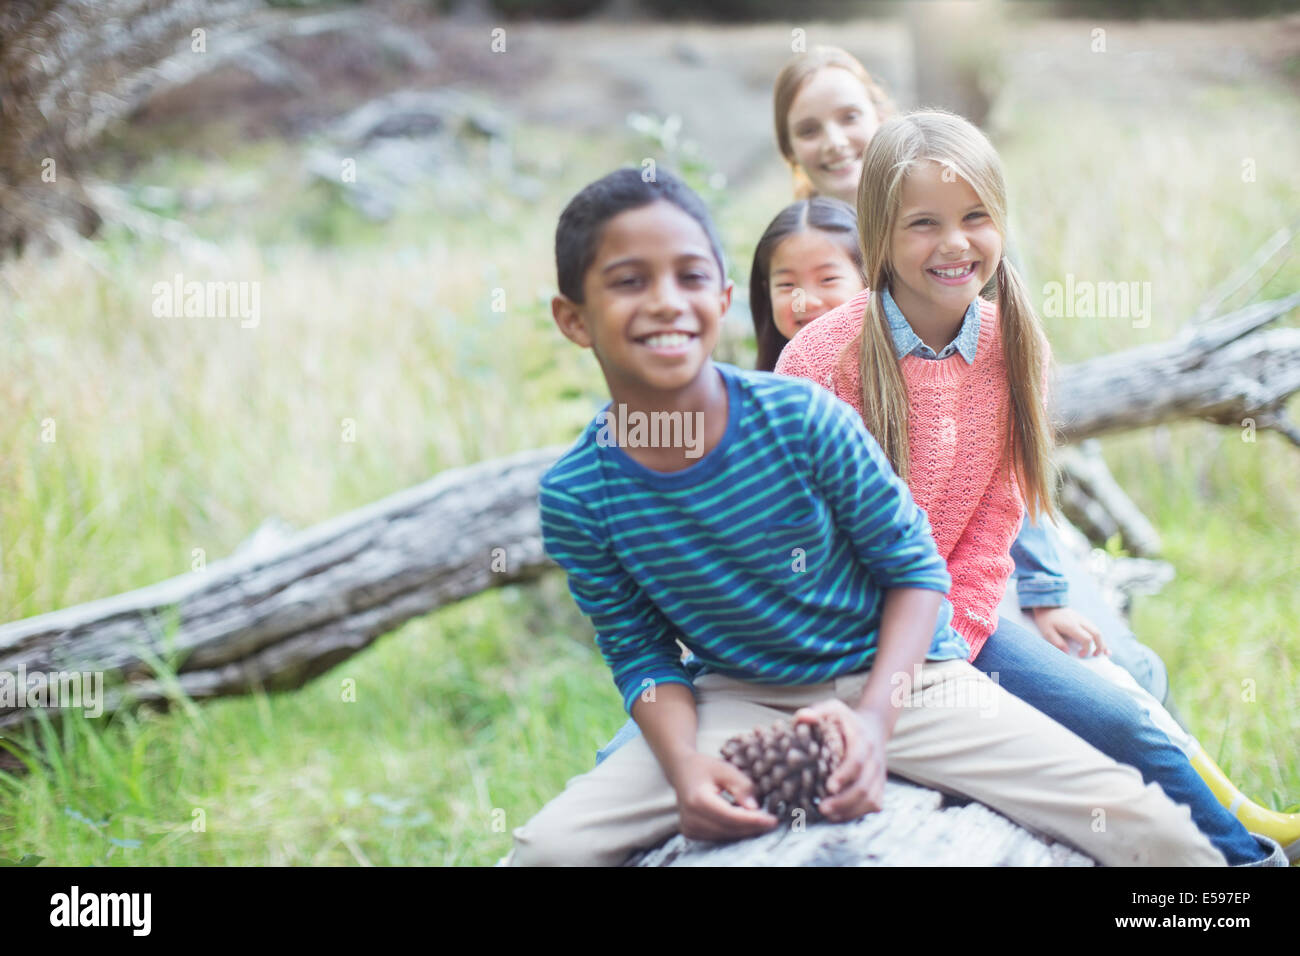 Children sitting on log in forest - Stock Image